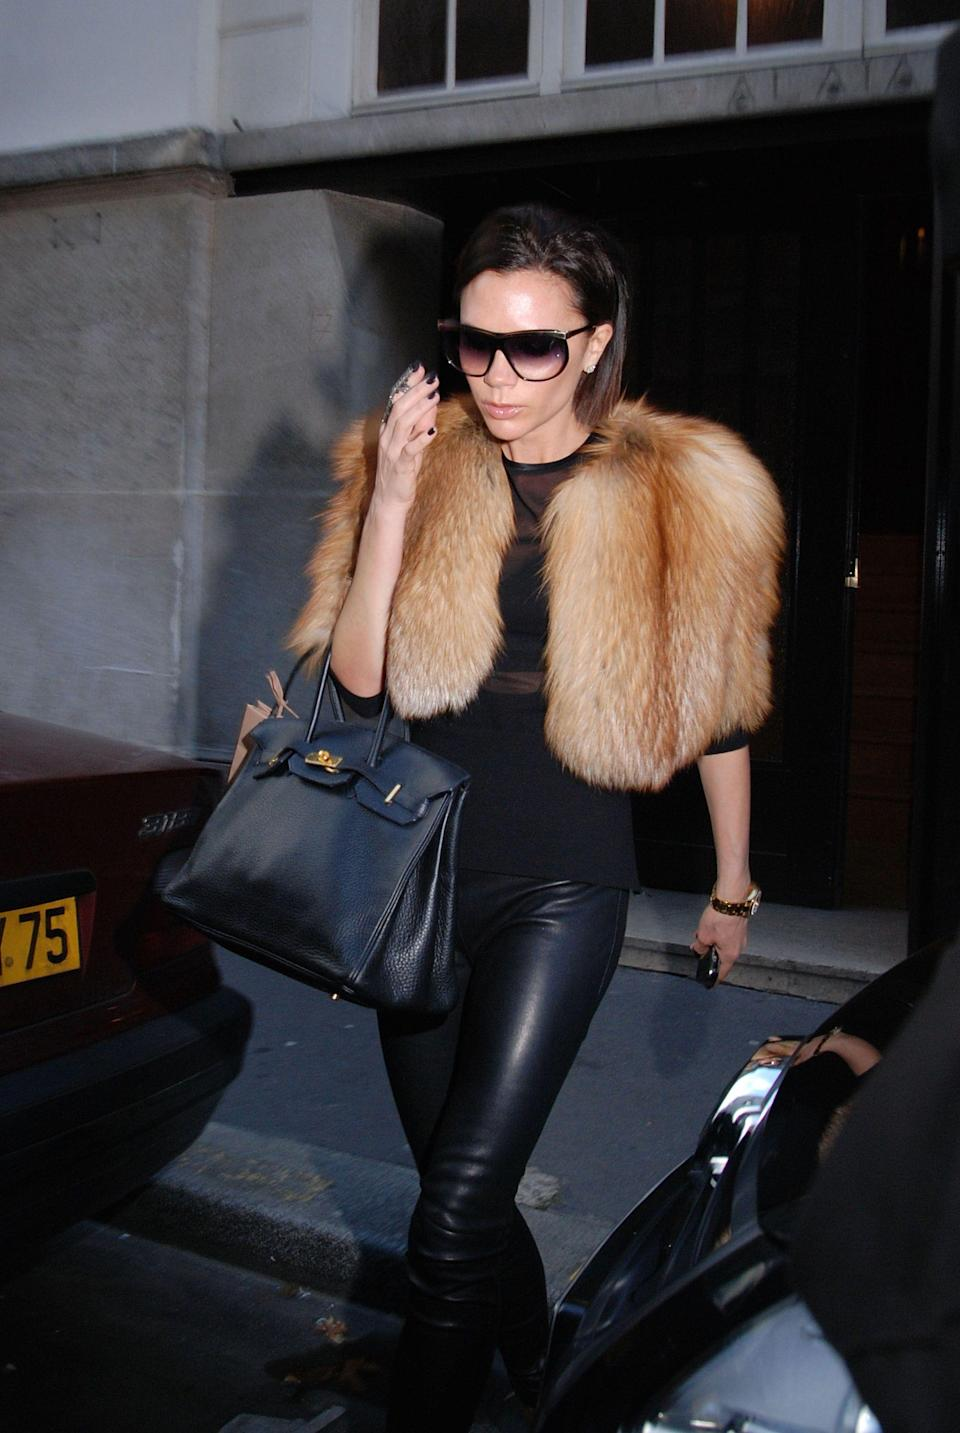 "<p class=""body-dropcap"">There are handbags, and then there is <a href=""https://www.harpersbazaar.com/fashion/designers/a35496165/hermes-birkin-legacy/"" rel=""nofollow noopener"" target=""_blank"" data-ylk=""slk:the mighty, mighty Birkin"" class=""link rapid-noclick-resp"">the mighty, mighty Birkin</a>. It is essentially the king of carryalls, a rare and highly coveted status symbol that was launched by Hermès in 1984. Indeed, a Birkin is not so easy to get; waiting lists can last for well more than a year—even for some that are preowned. But now, thanks to Gilt, buying one is as easy as adding to cart. </p><p>Today, Gilt added a number of Birkins to The Vintage Showcase, the online retailer's boutique of the most sought-after bags in luxury. From Fendi's Peekaboo and Dior's Saddle to Louis Vuitton's Mahina and Chanel's Cambon Ligne Bowler, the entire court is present. But the one that has dominion over the rest, the one that reigns supreme, is ready and waiting to be purchased. </p><p>On offer, at least for now, are five options: the Brown Leather Birkin 35 PHW, the Chocolat Clemence Leather Birkin 30 PHW, the Gold Clemence Leather Birkin 35 PHW (this one is eye candy, really), the Black Clemence Leather Clemence Birkin 35 GHW, and the Gris Tourterelle Togo Leather Birkin 35 PHW. Whether you're a newbie or full-blown collector, all are great for taking a stroll outdoors and, simply put, showing off. It's not every day that an authenticated Birkin is primed and ready for purchasing. Note: There is only one of each, so get yours now. </p><hr>"